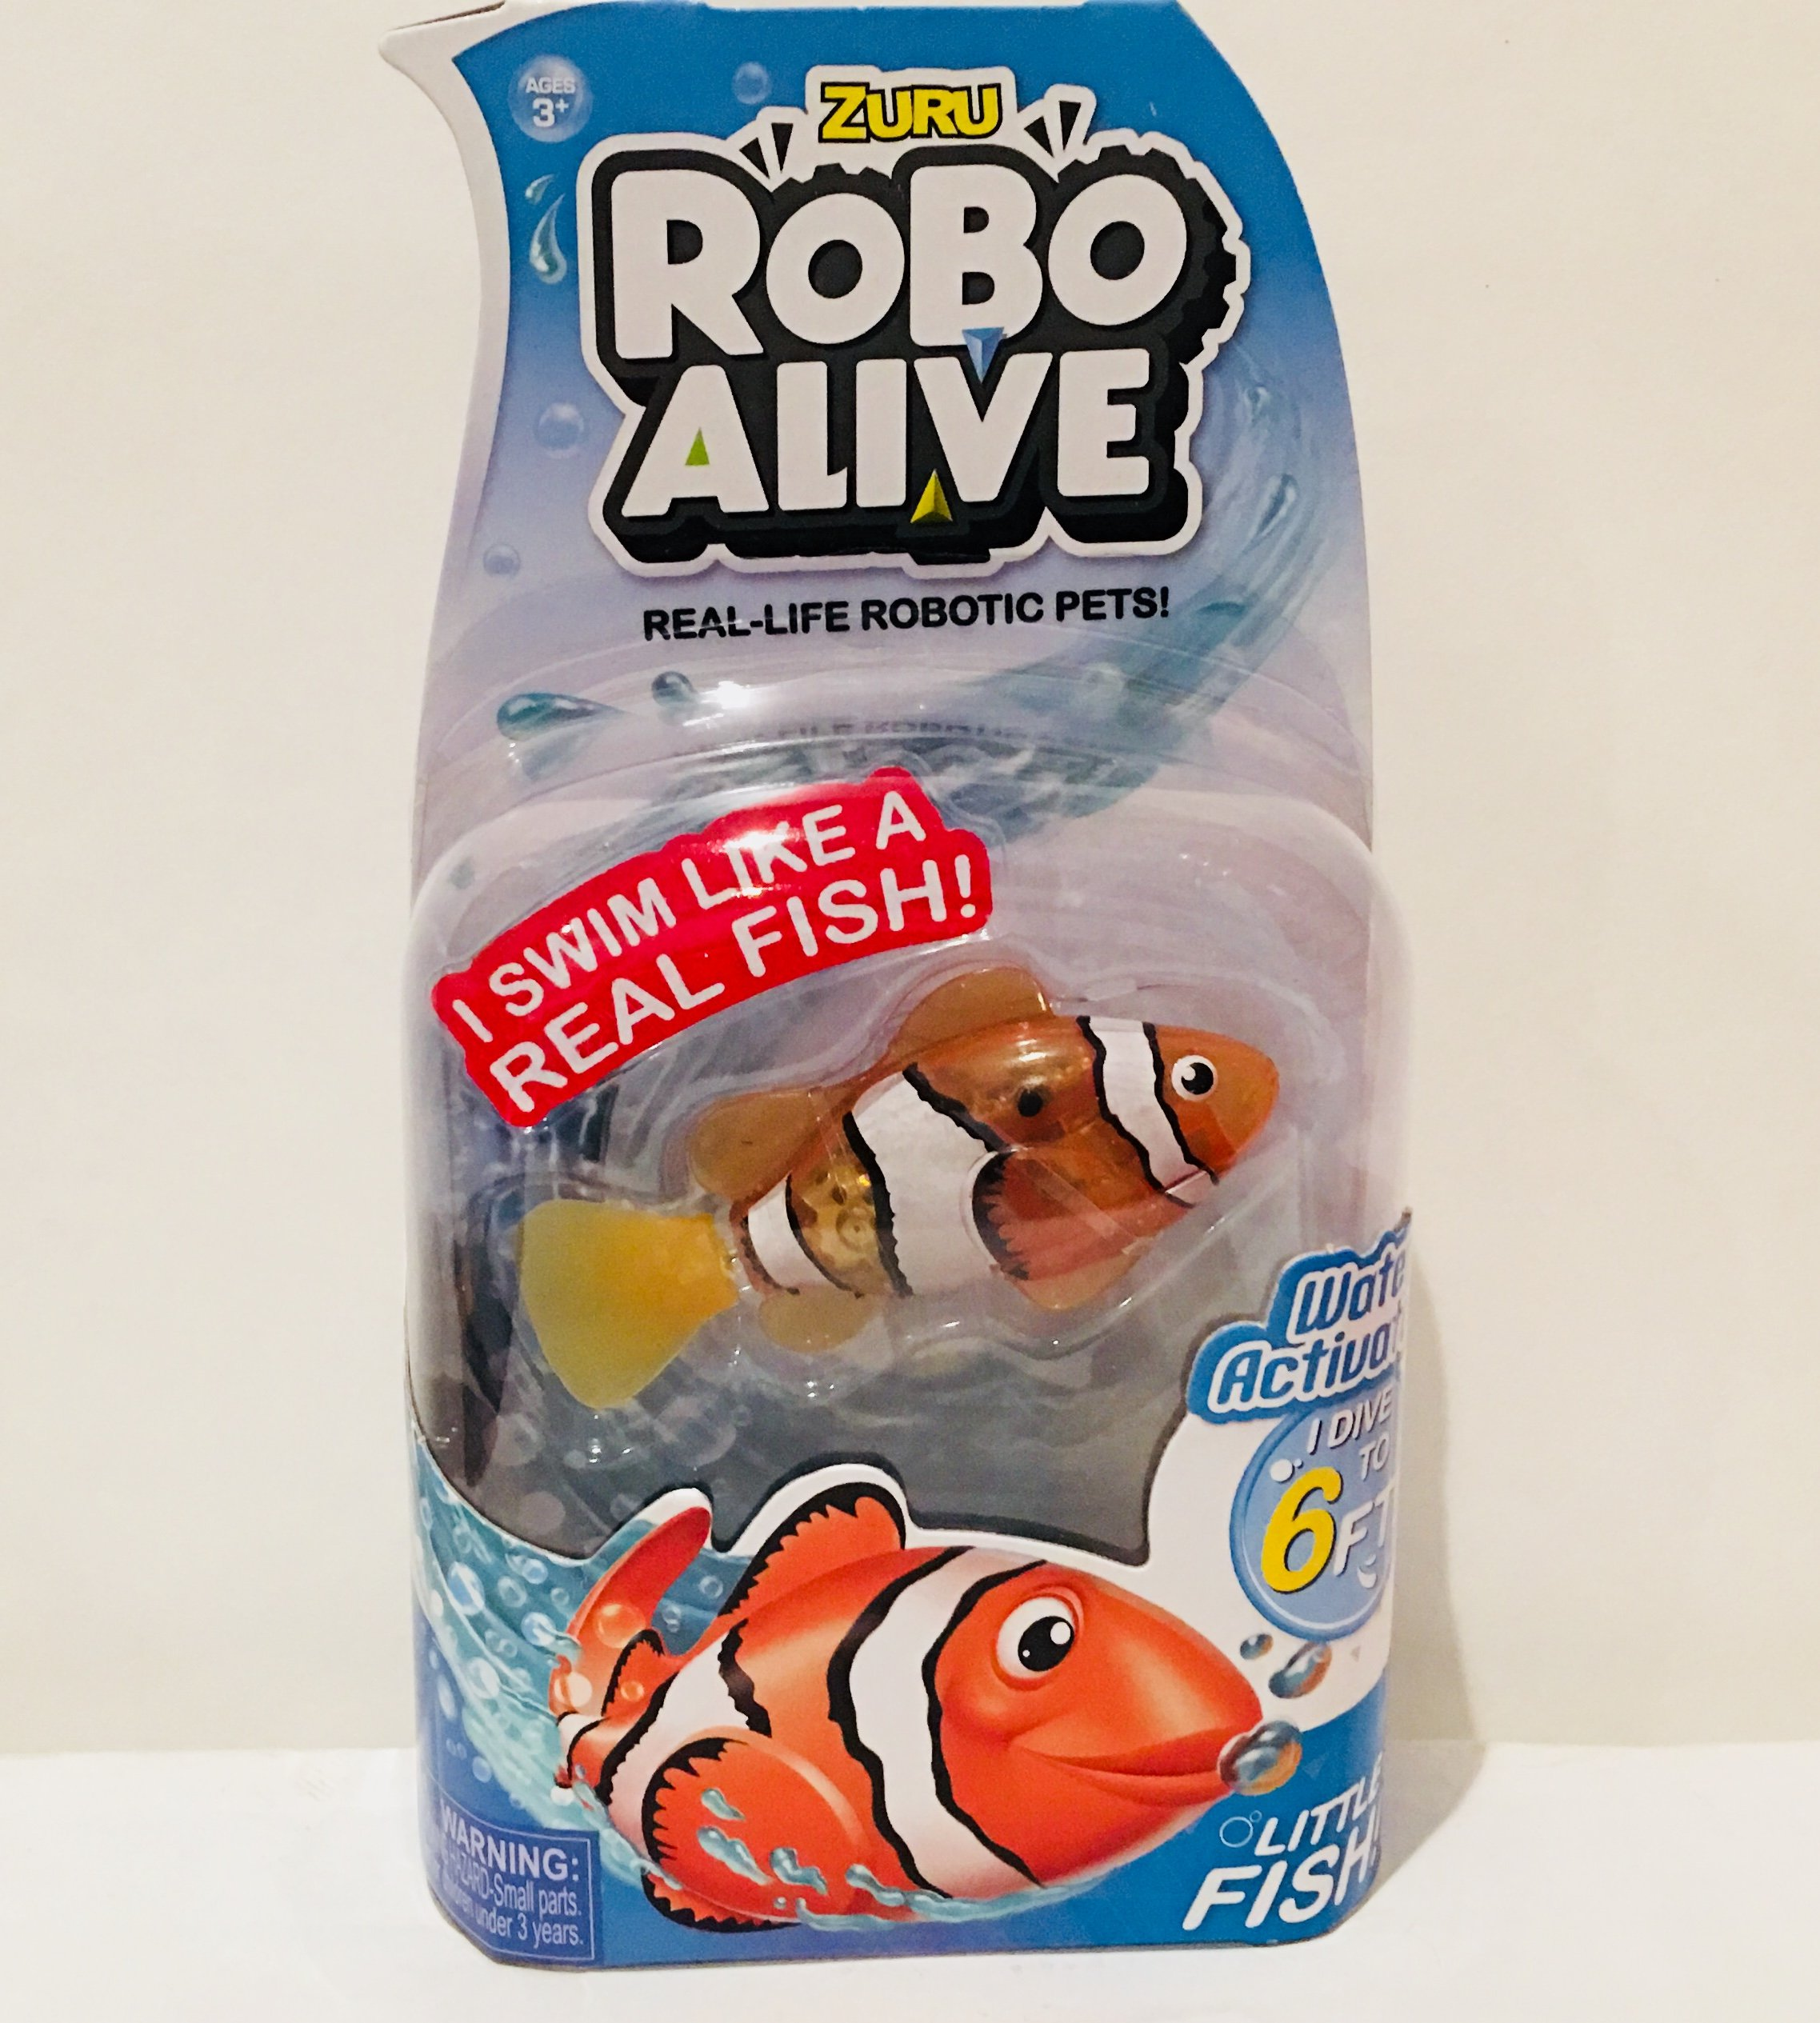 New Zuru Robo Alive Little Fish Collection Real-Life Robotic Pets - Water Activated LITTLE CLOWNFISH - Swims like a Real Fish an